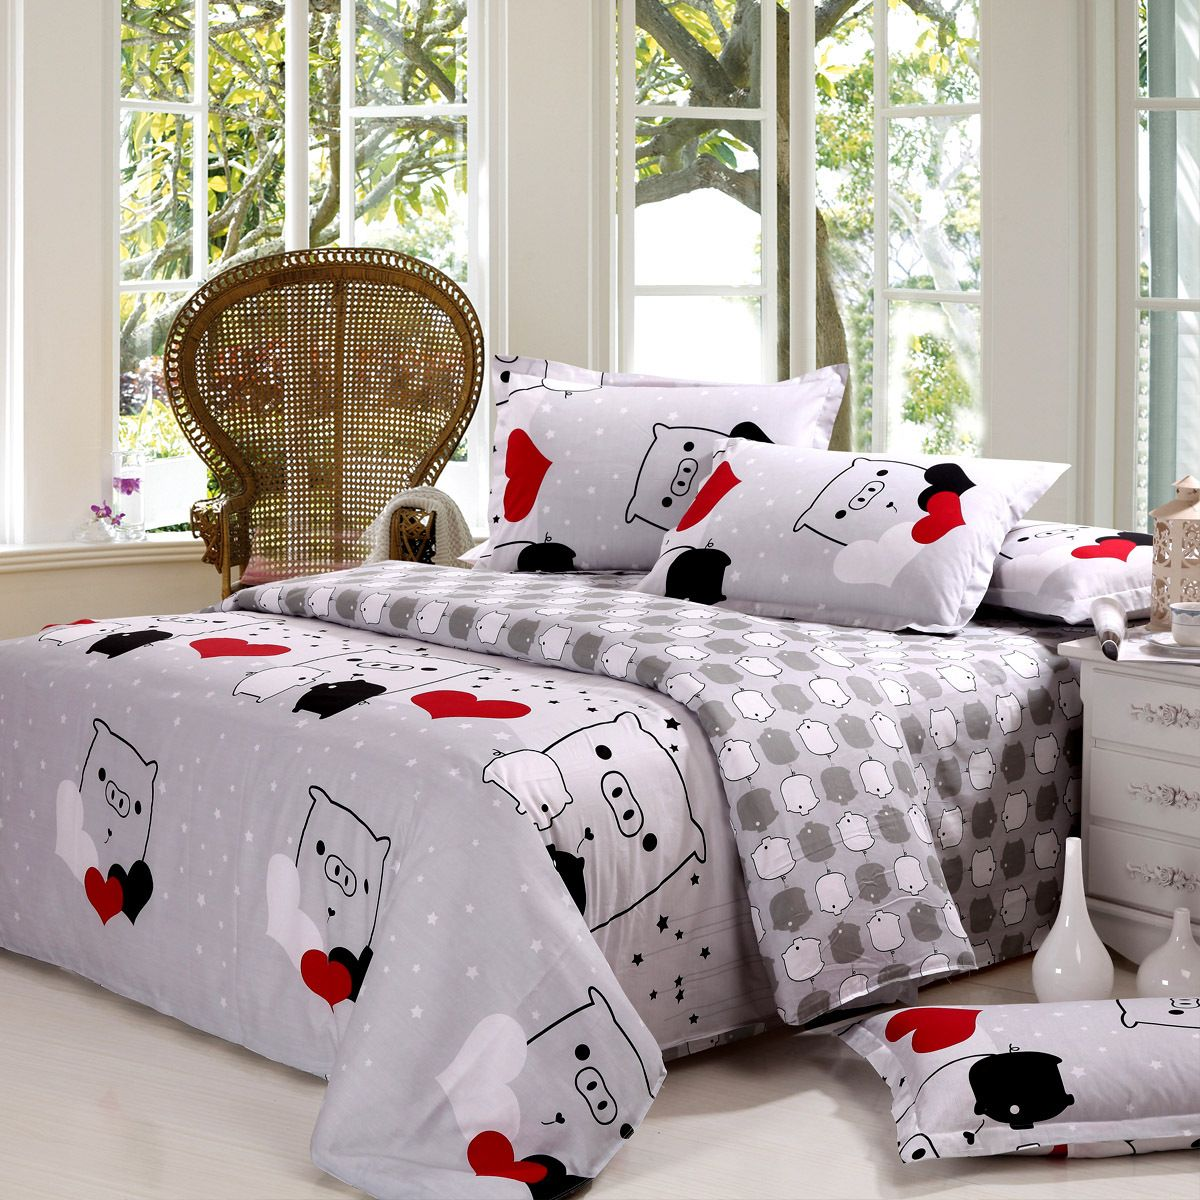 Free Shipping Pig Bedding 100% Textile Cotton Duvet Cover Bed Sheets Bed  Four Piece Set